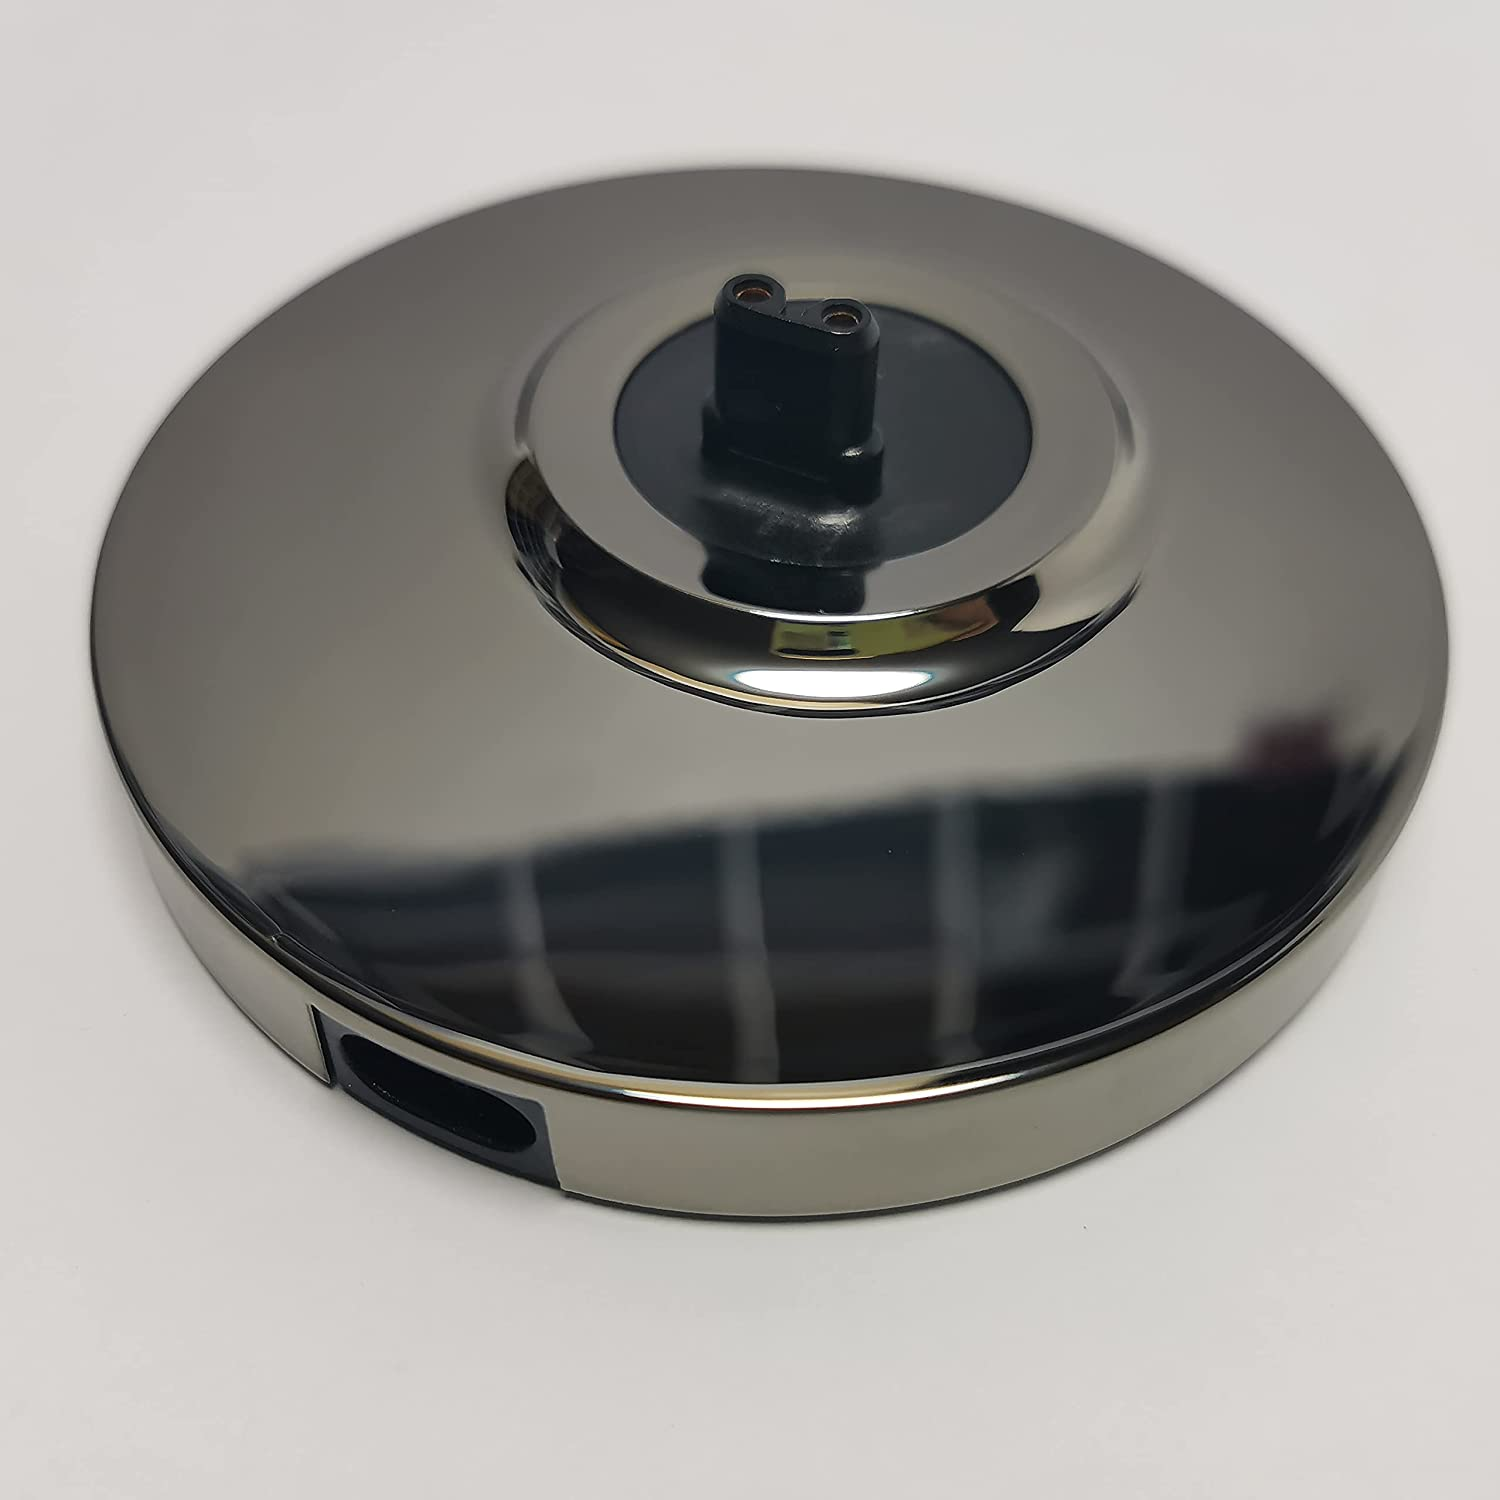 Shaver Charger Stand Base For 100% quality warranty! HQ7350 HQ7200 Free shipping anywhere in the nation HQ7300 HQ7325 HQ7100